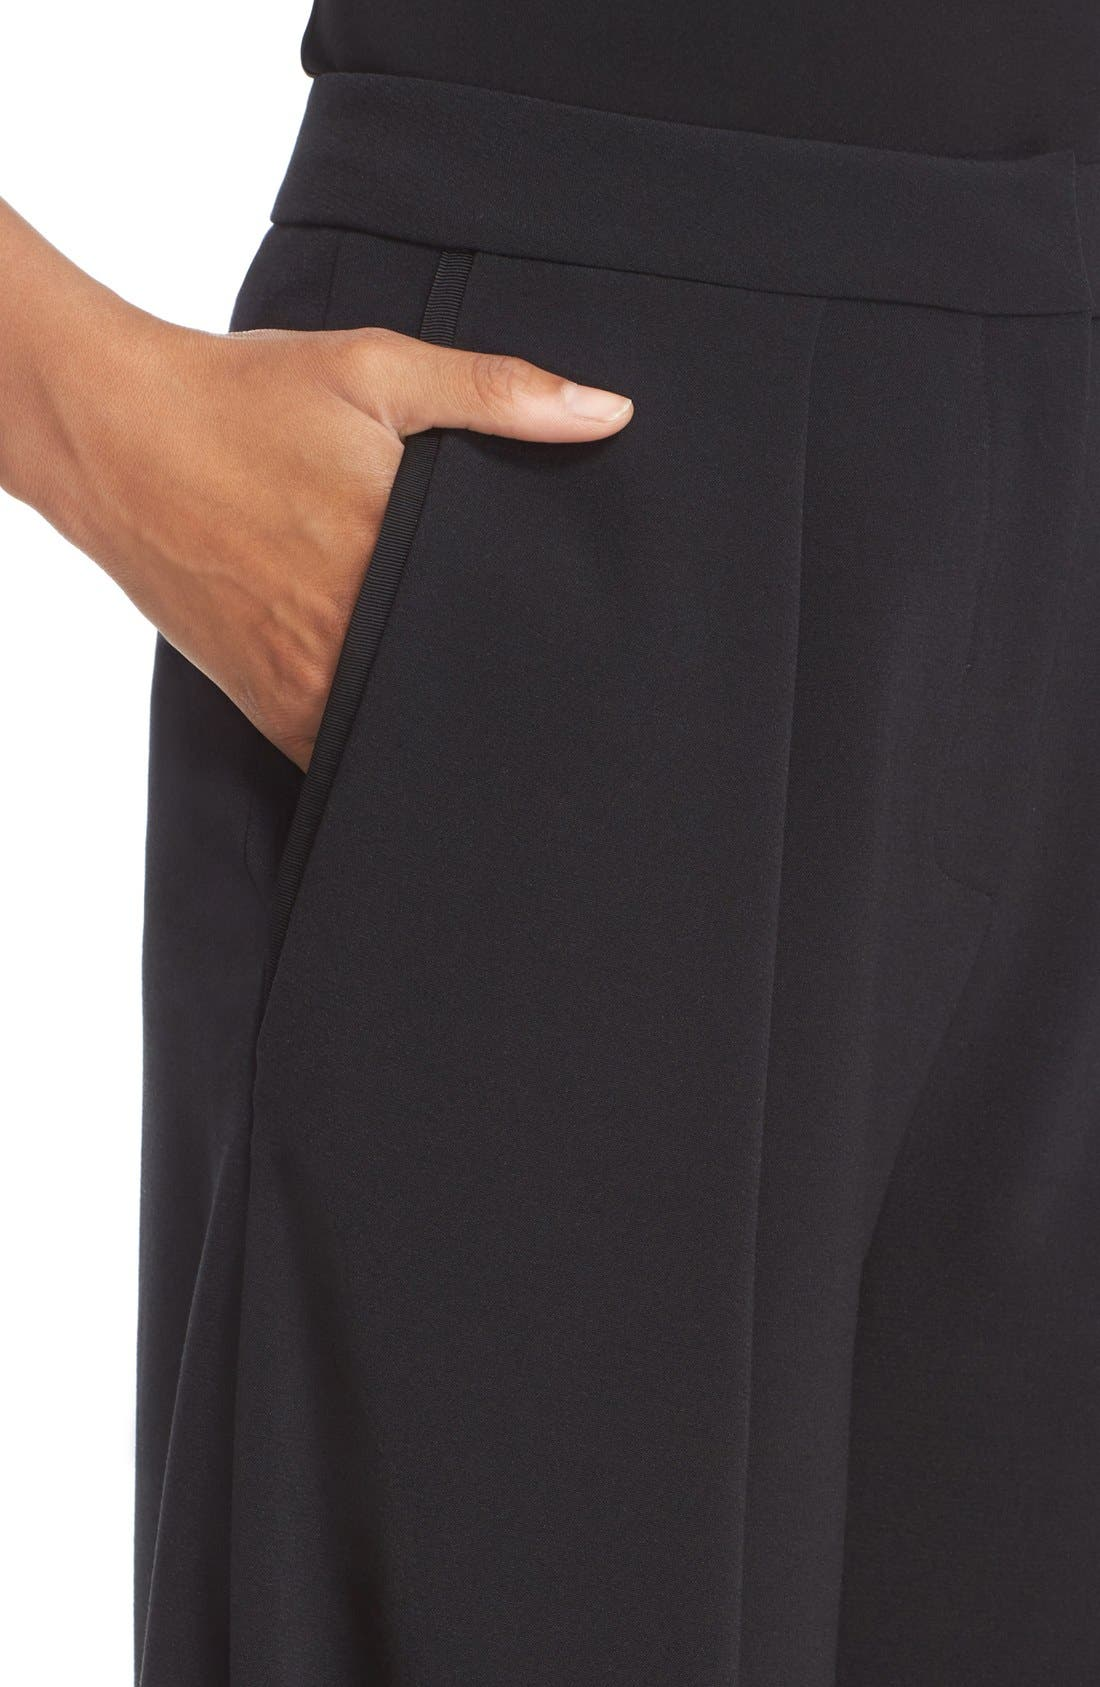 Devon Culottes,                             Alternate thumbnail 6, color,                             Black